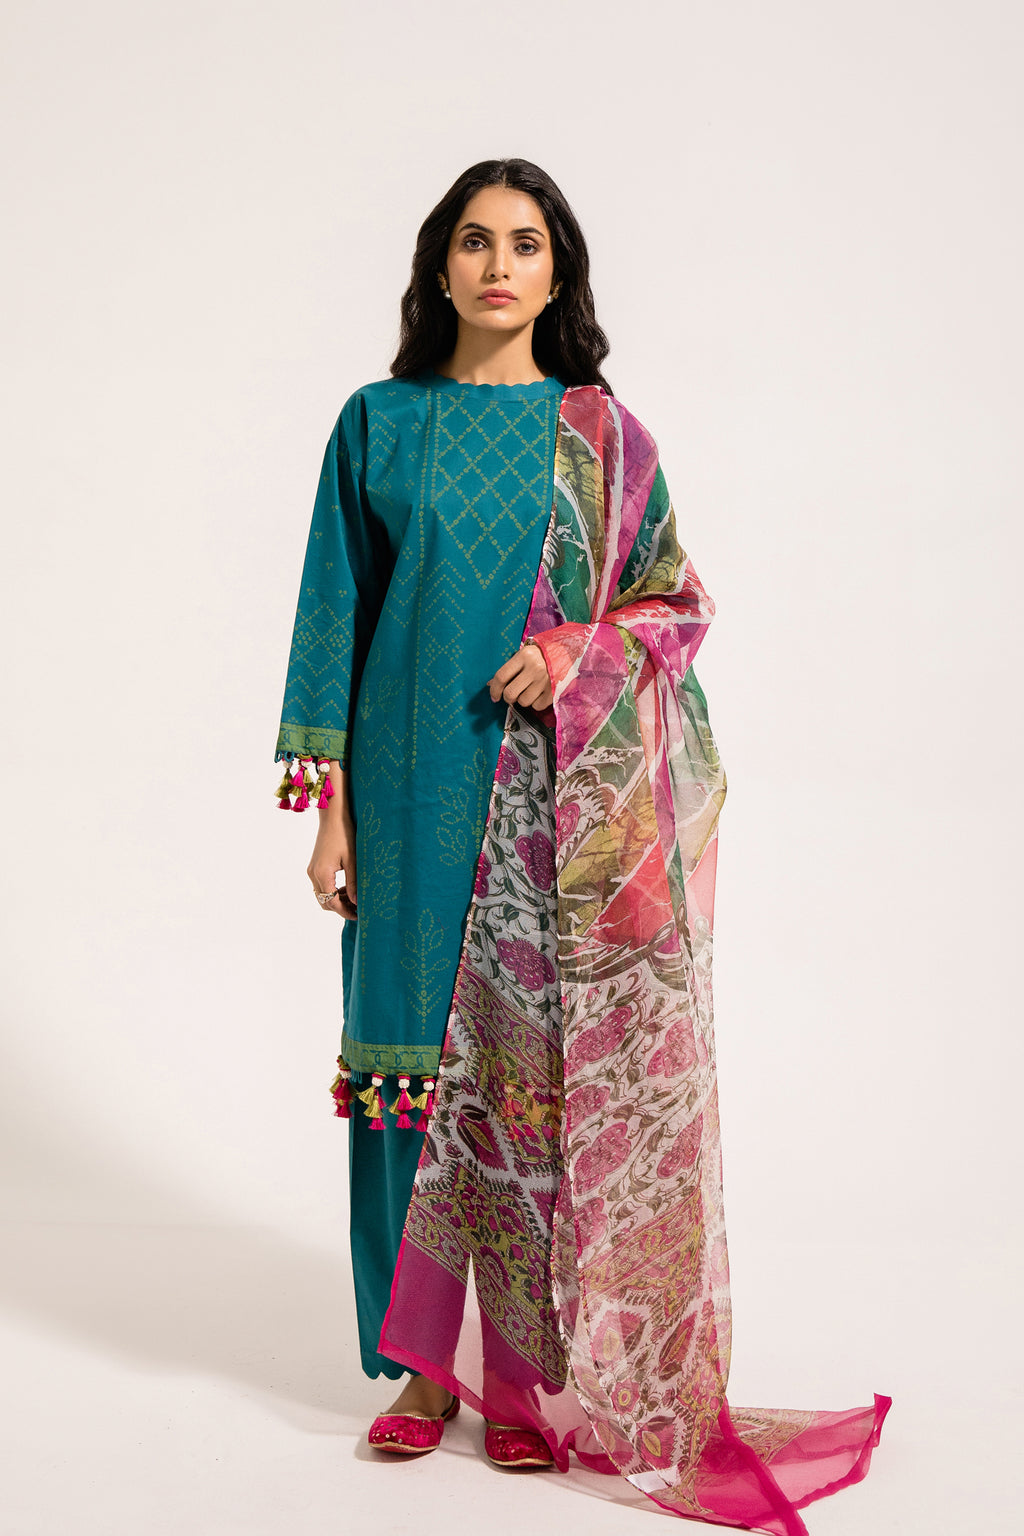 BANDHANI (WUC111285) - Ethnic by Outfitters